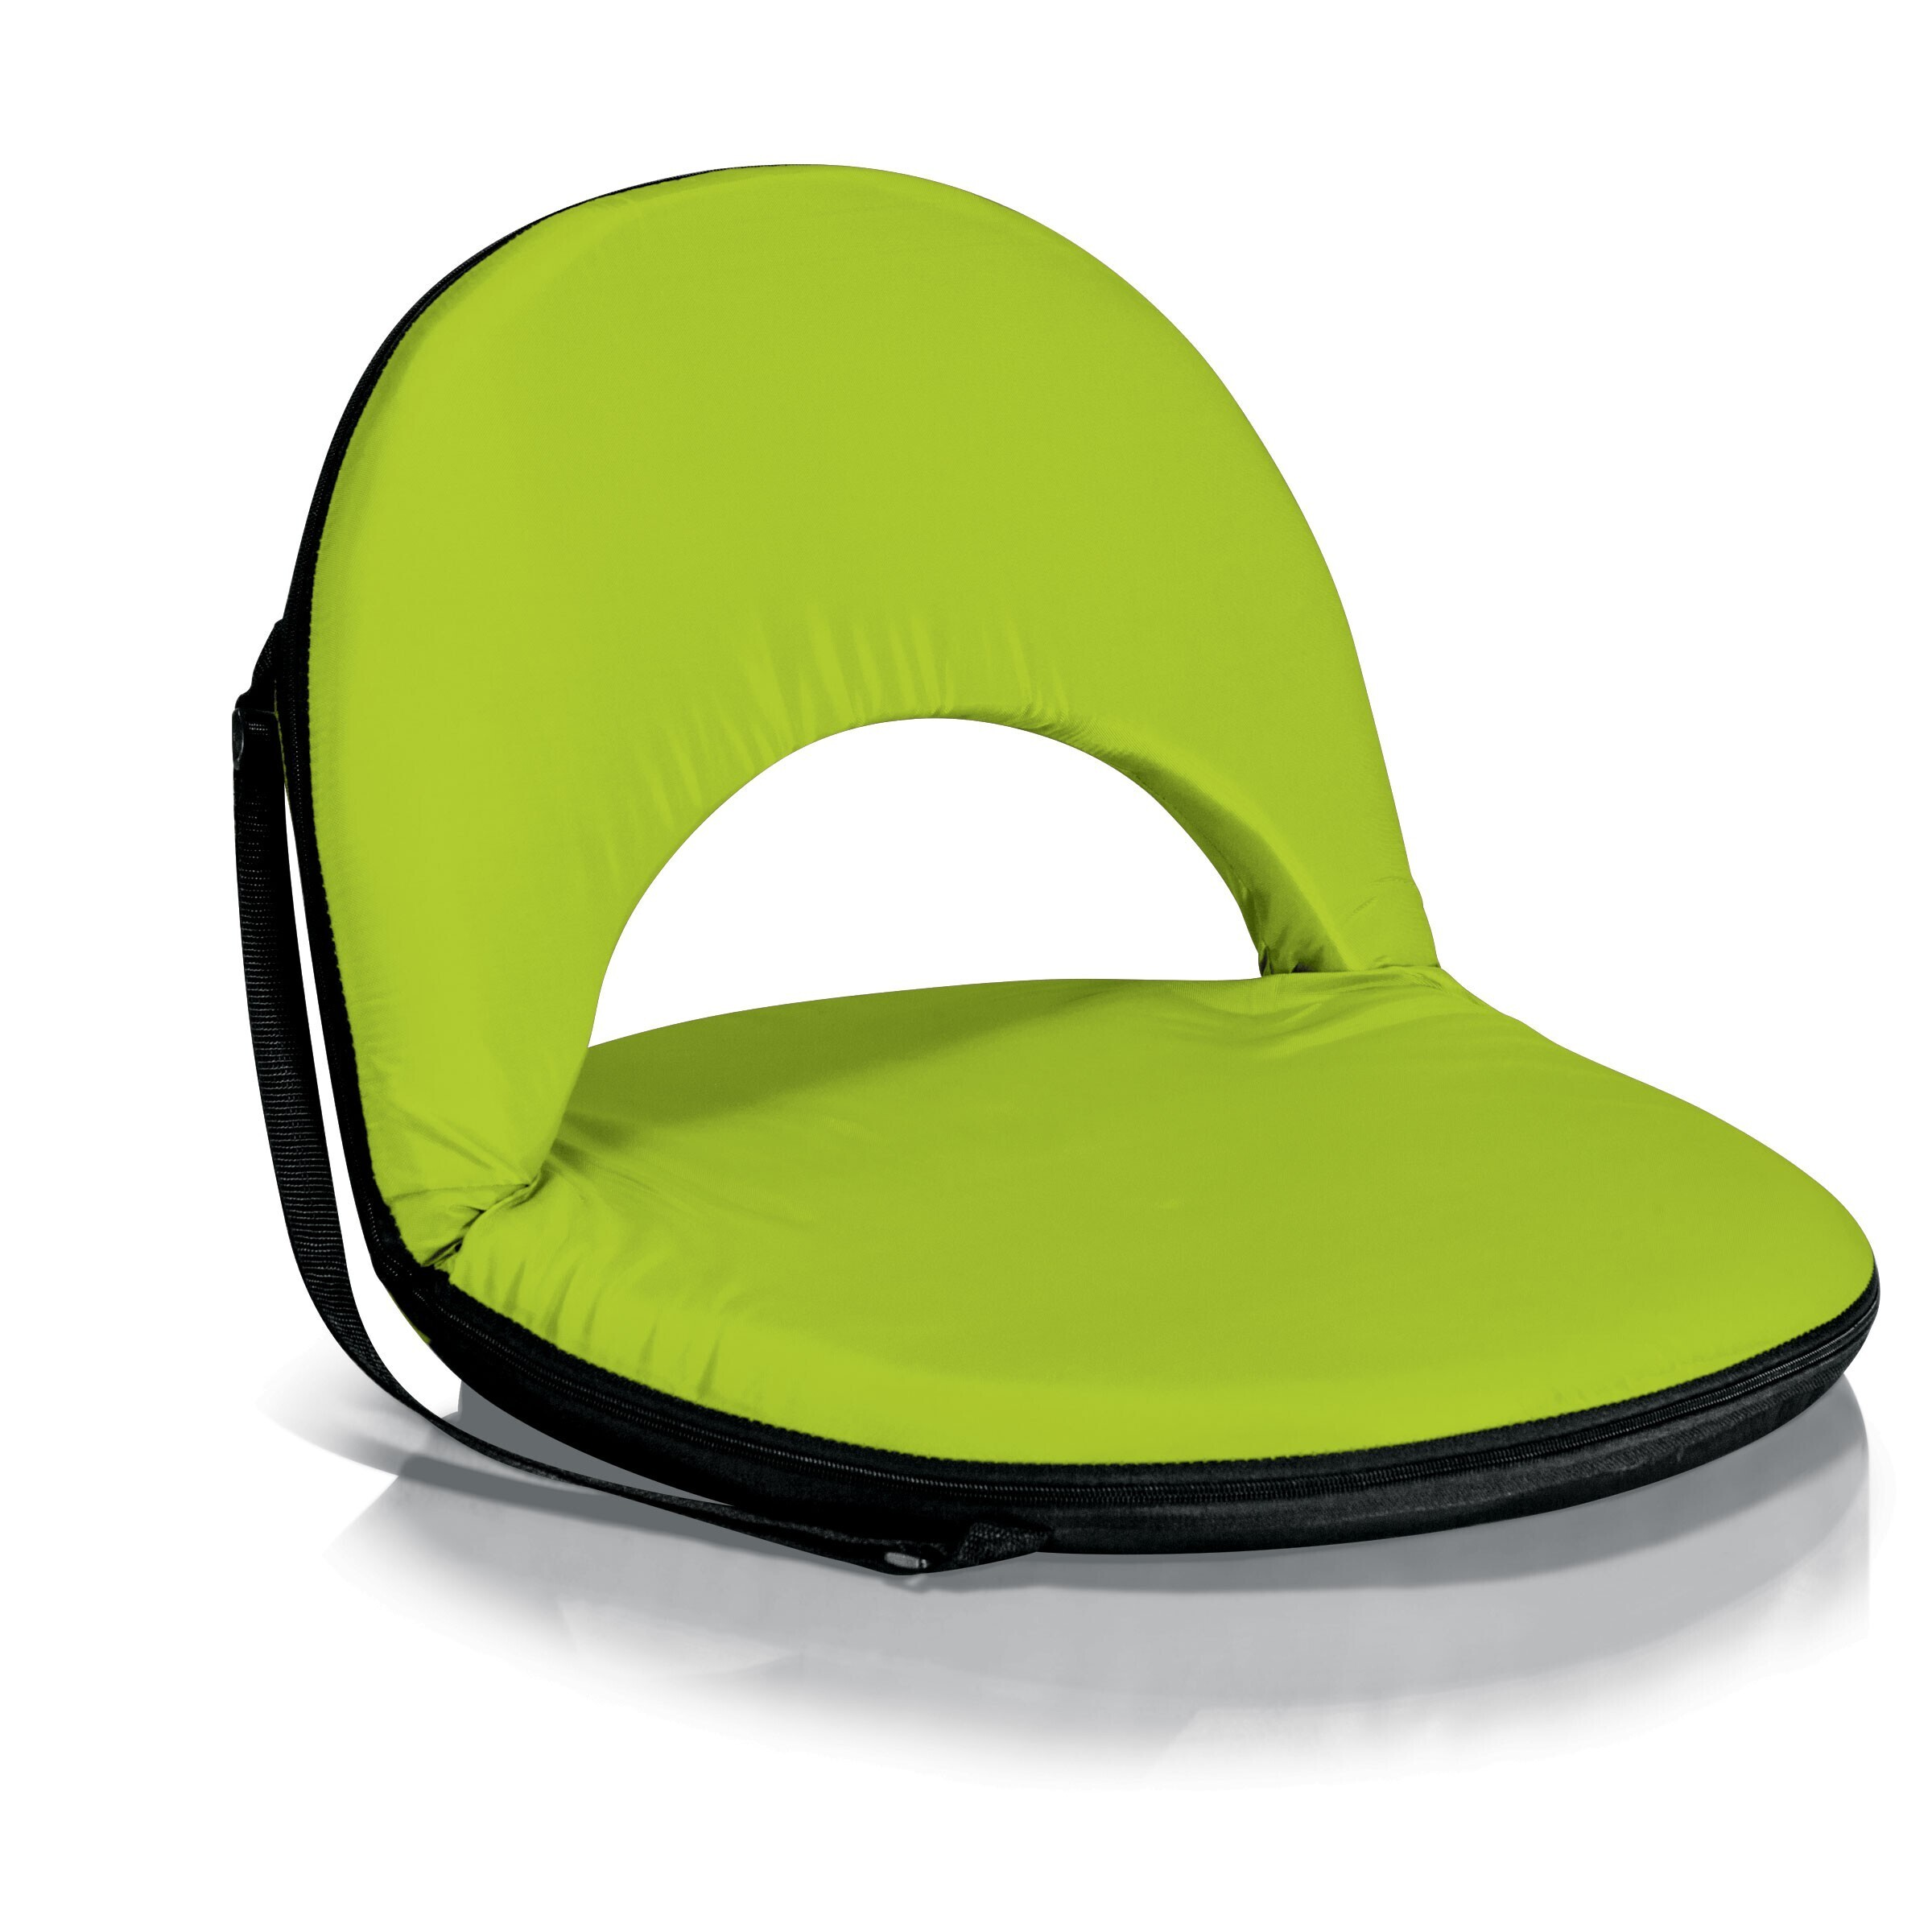 Oniva Portable Recliner Seat